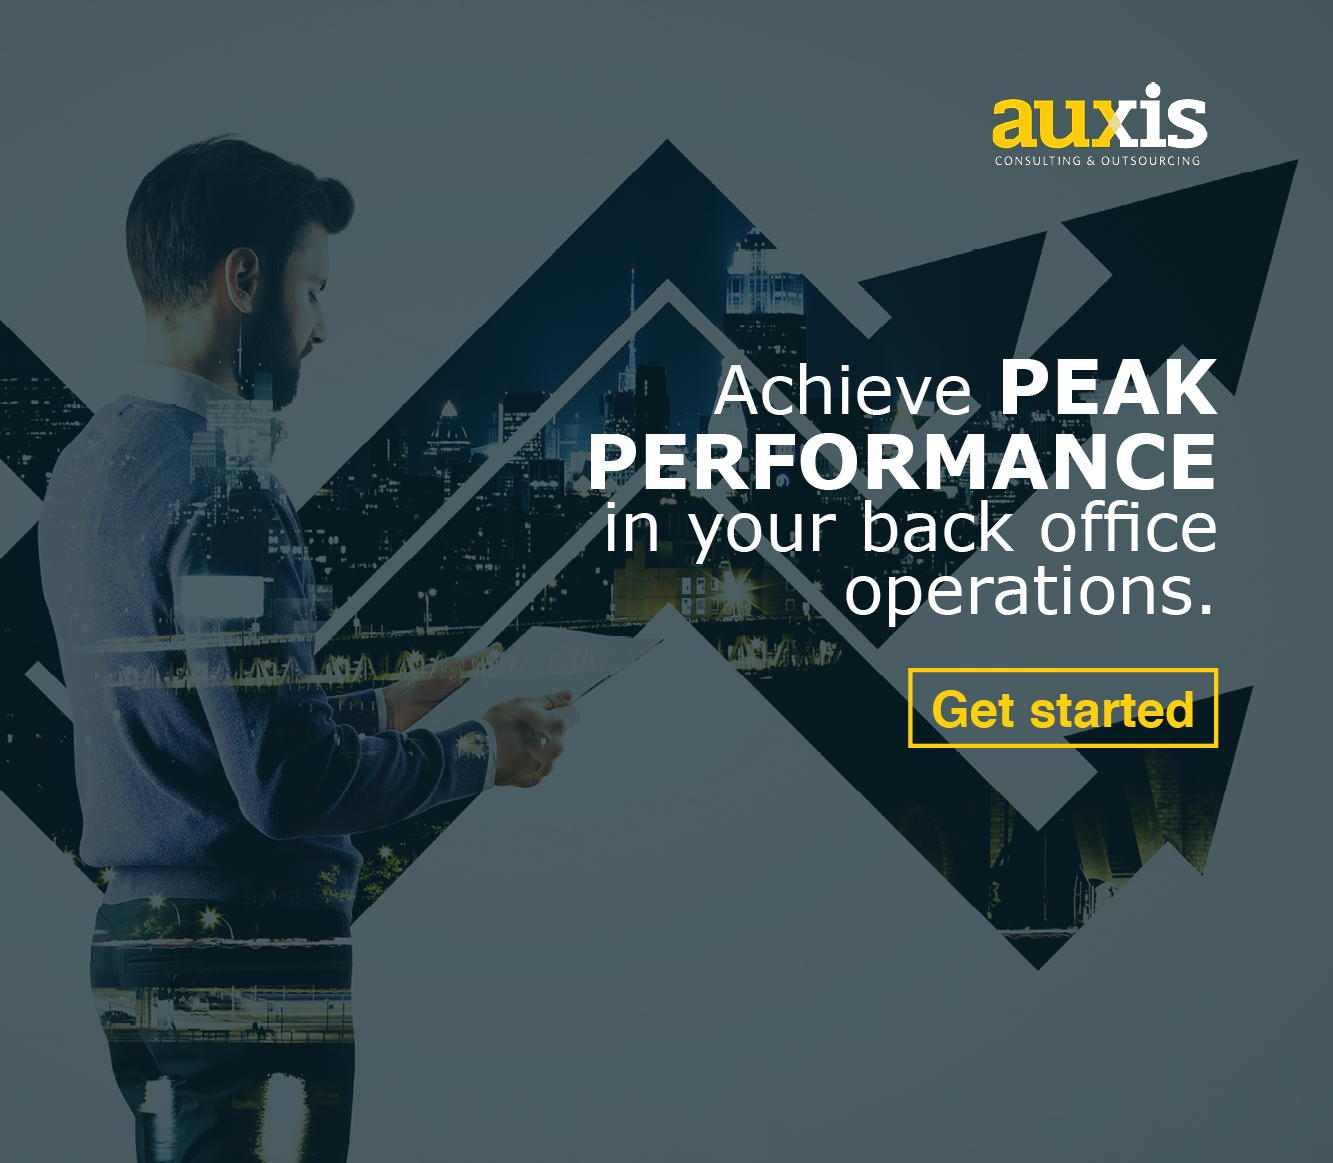 peak perfromance in your back office operations